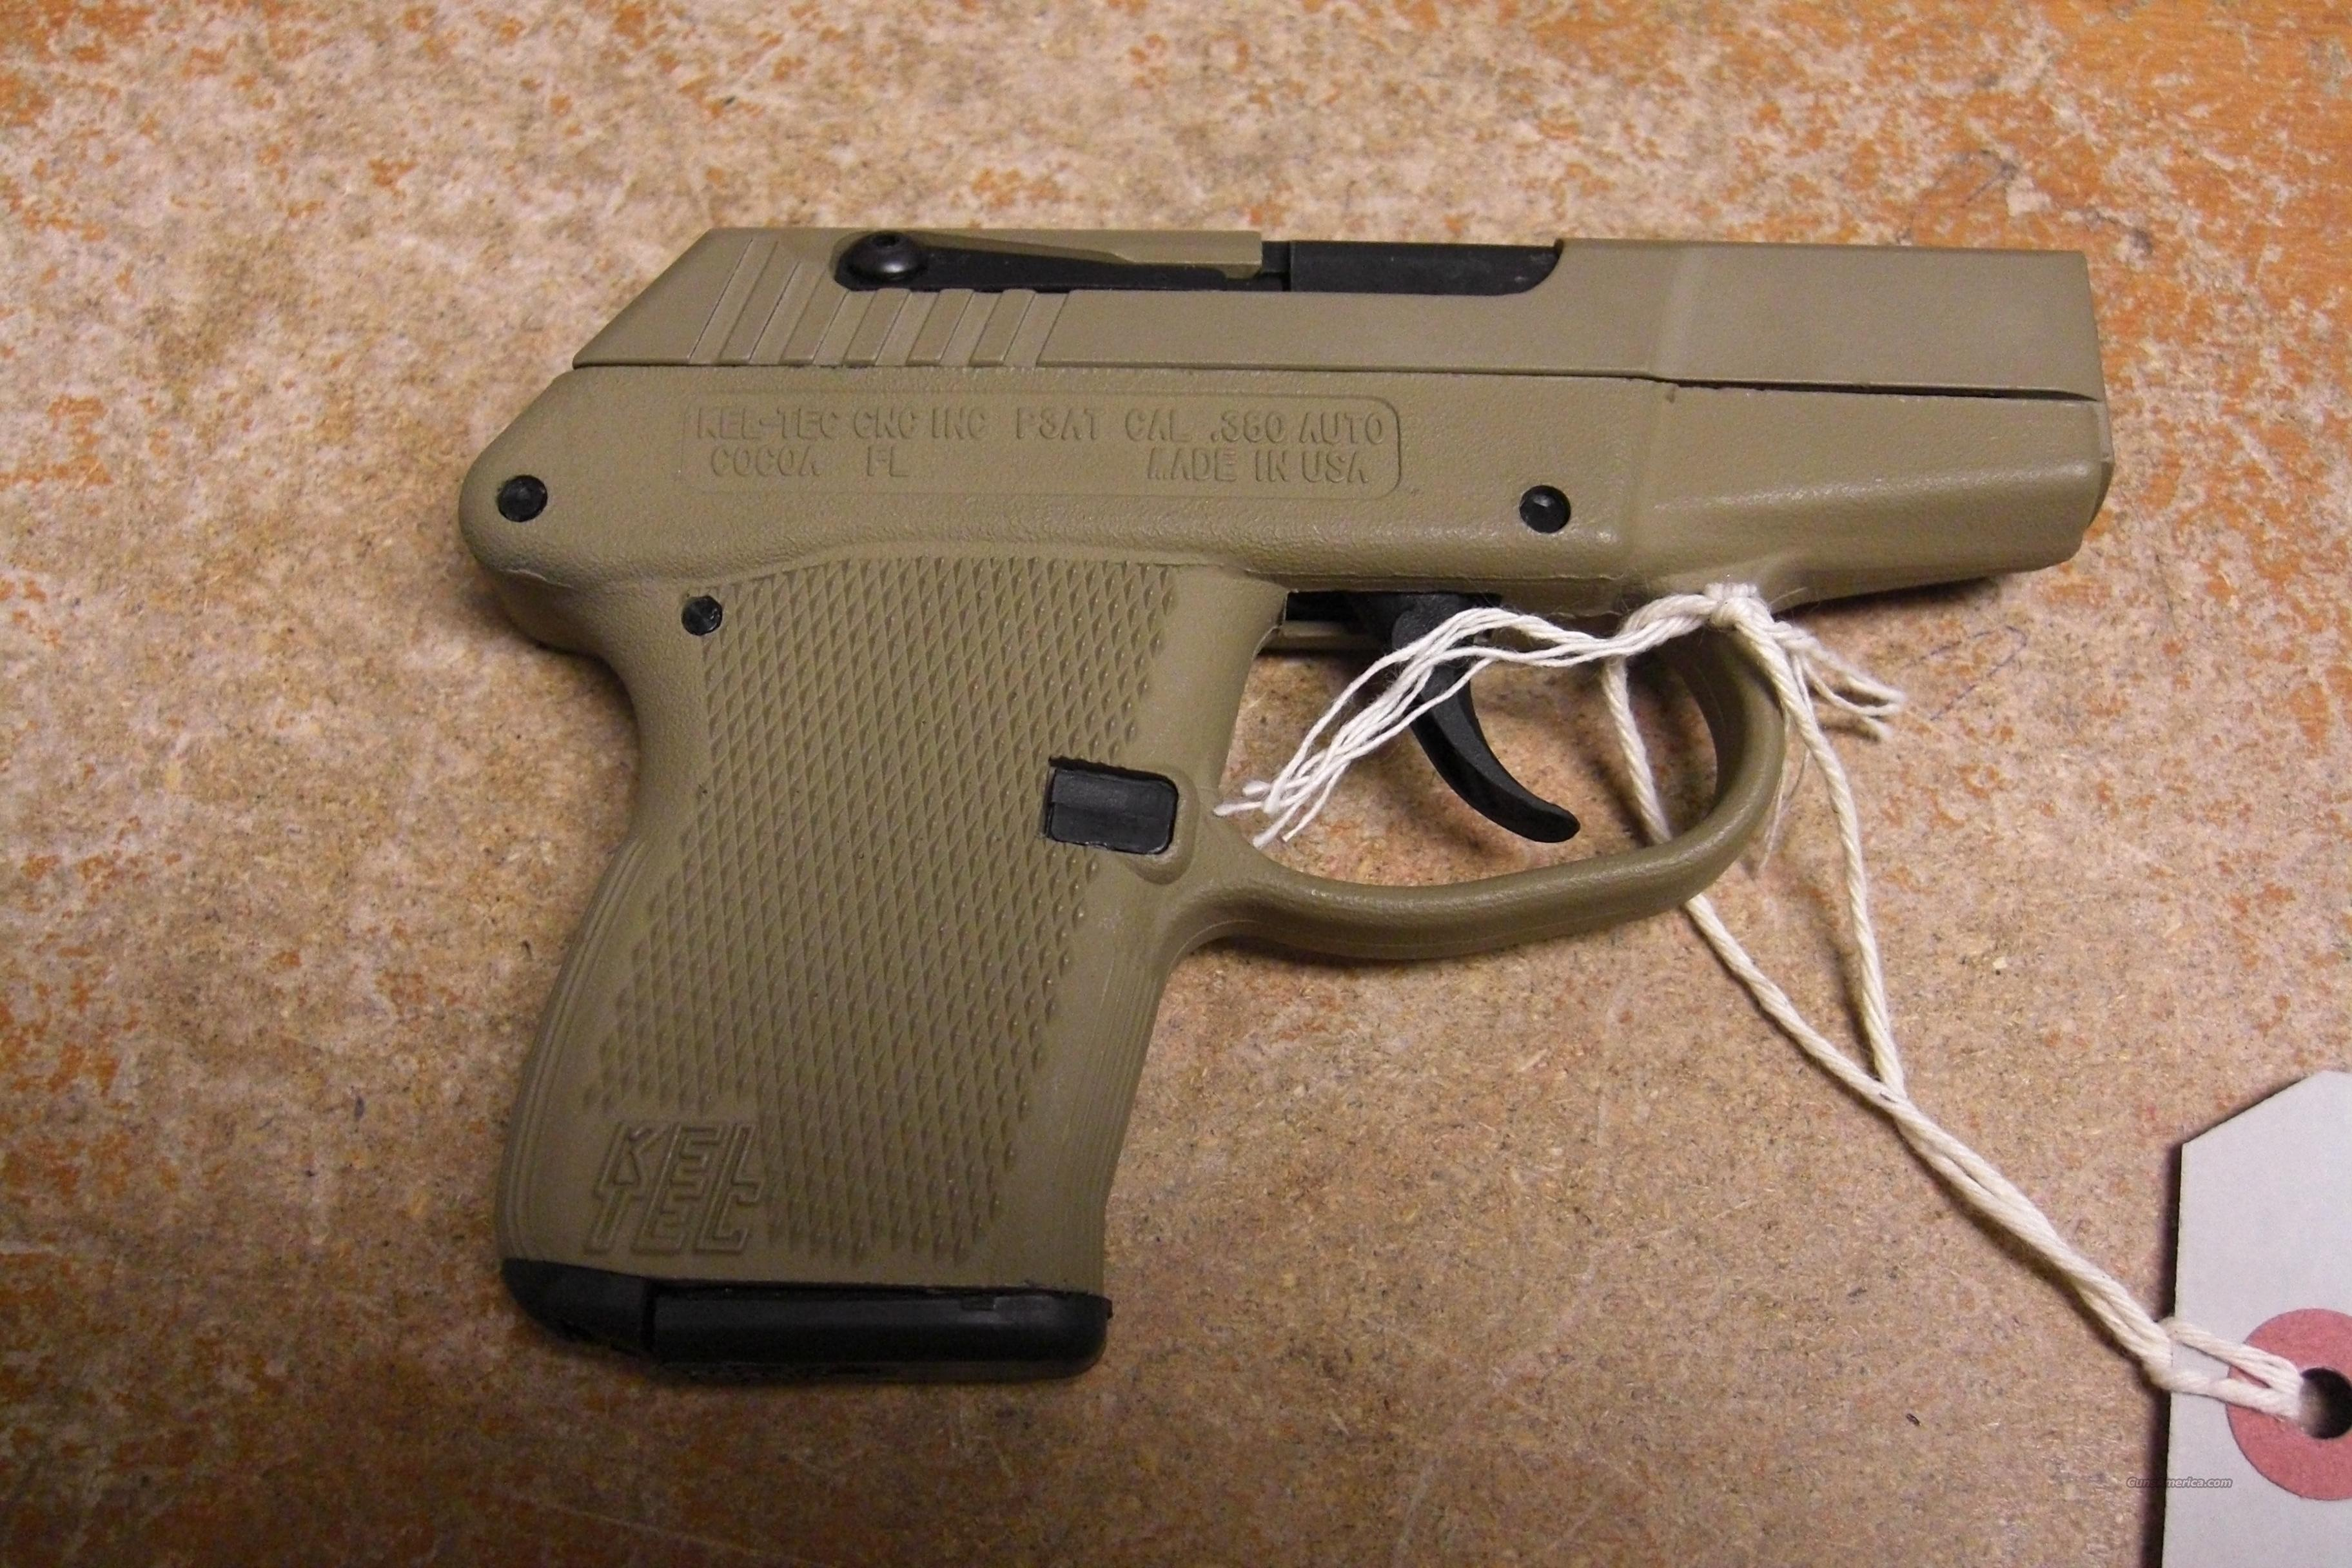 P3AT w/desert tan finish  Guns > Pistols > Kel-Tec Pistols > Pocket Pistol Type